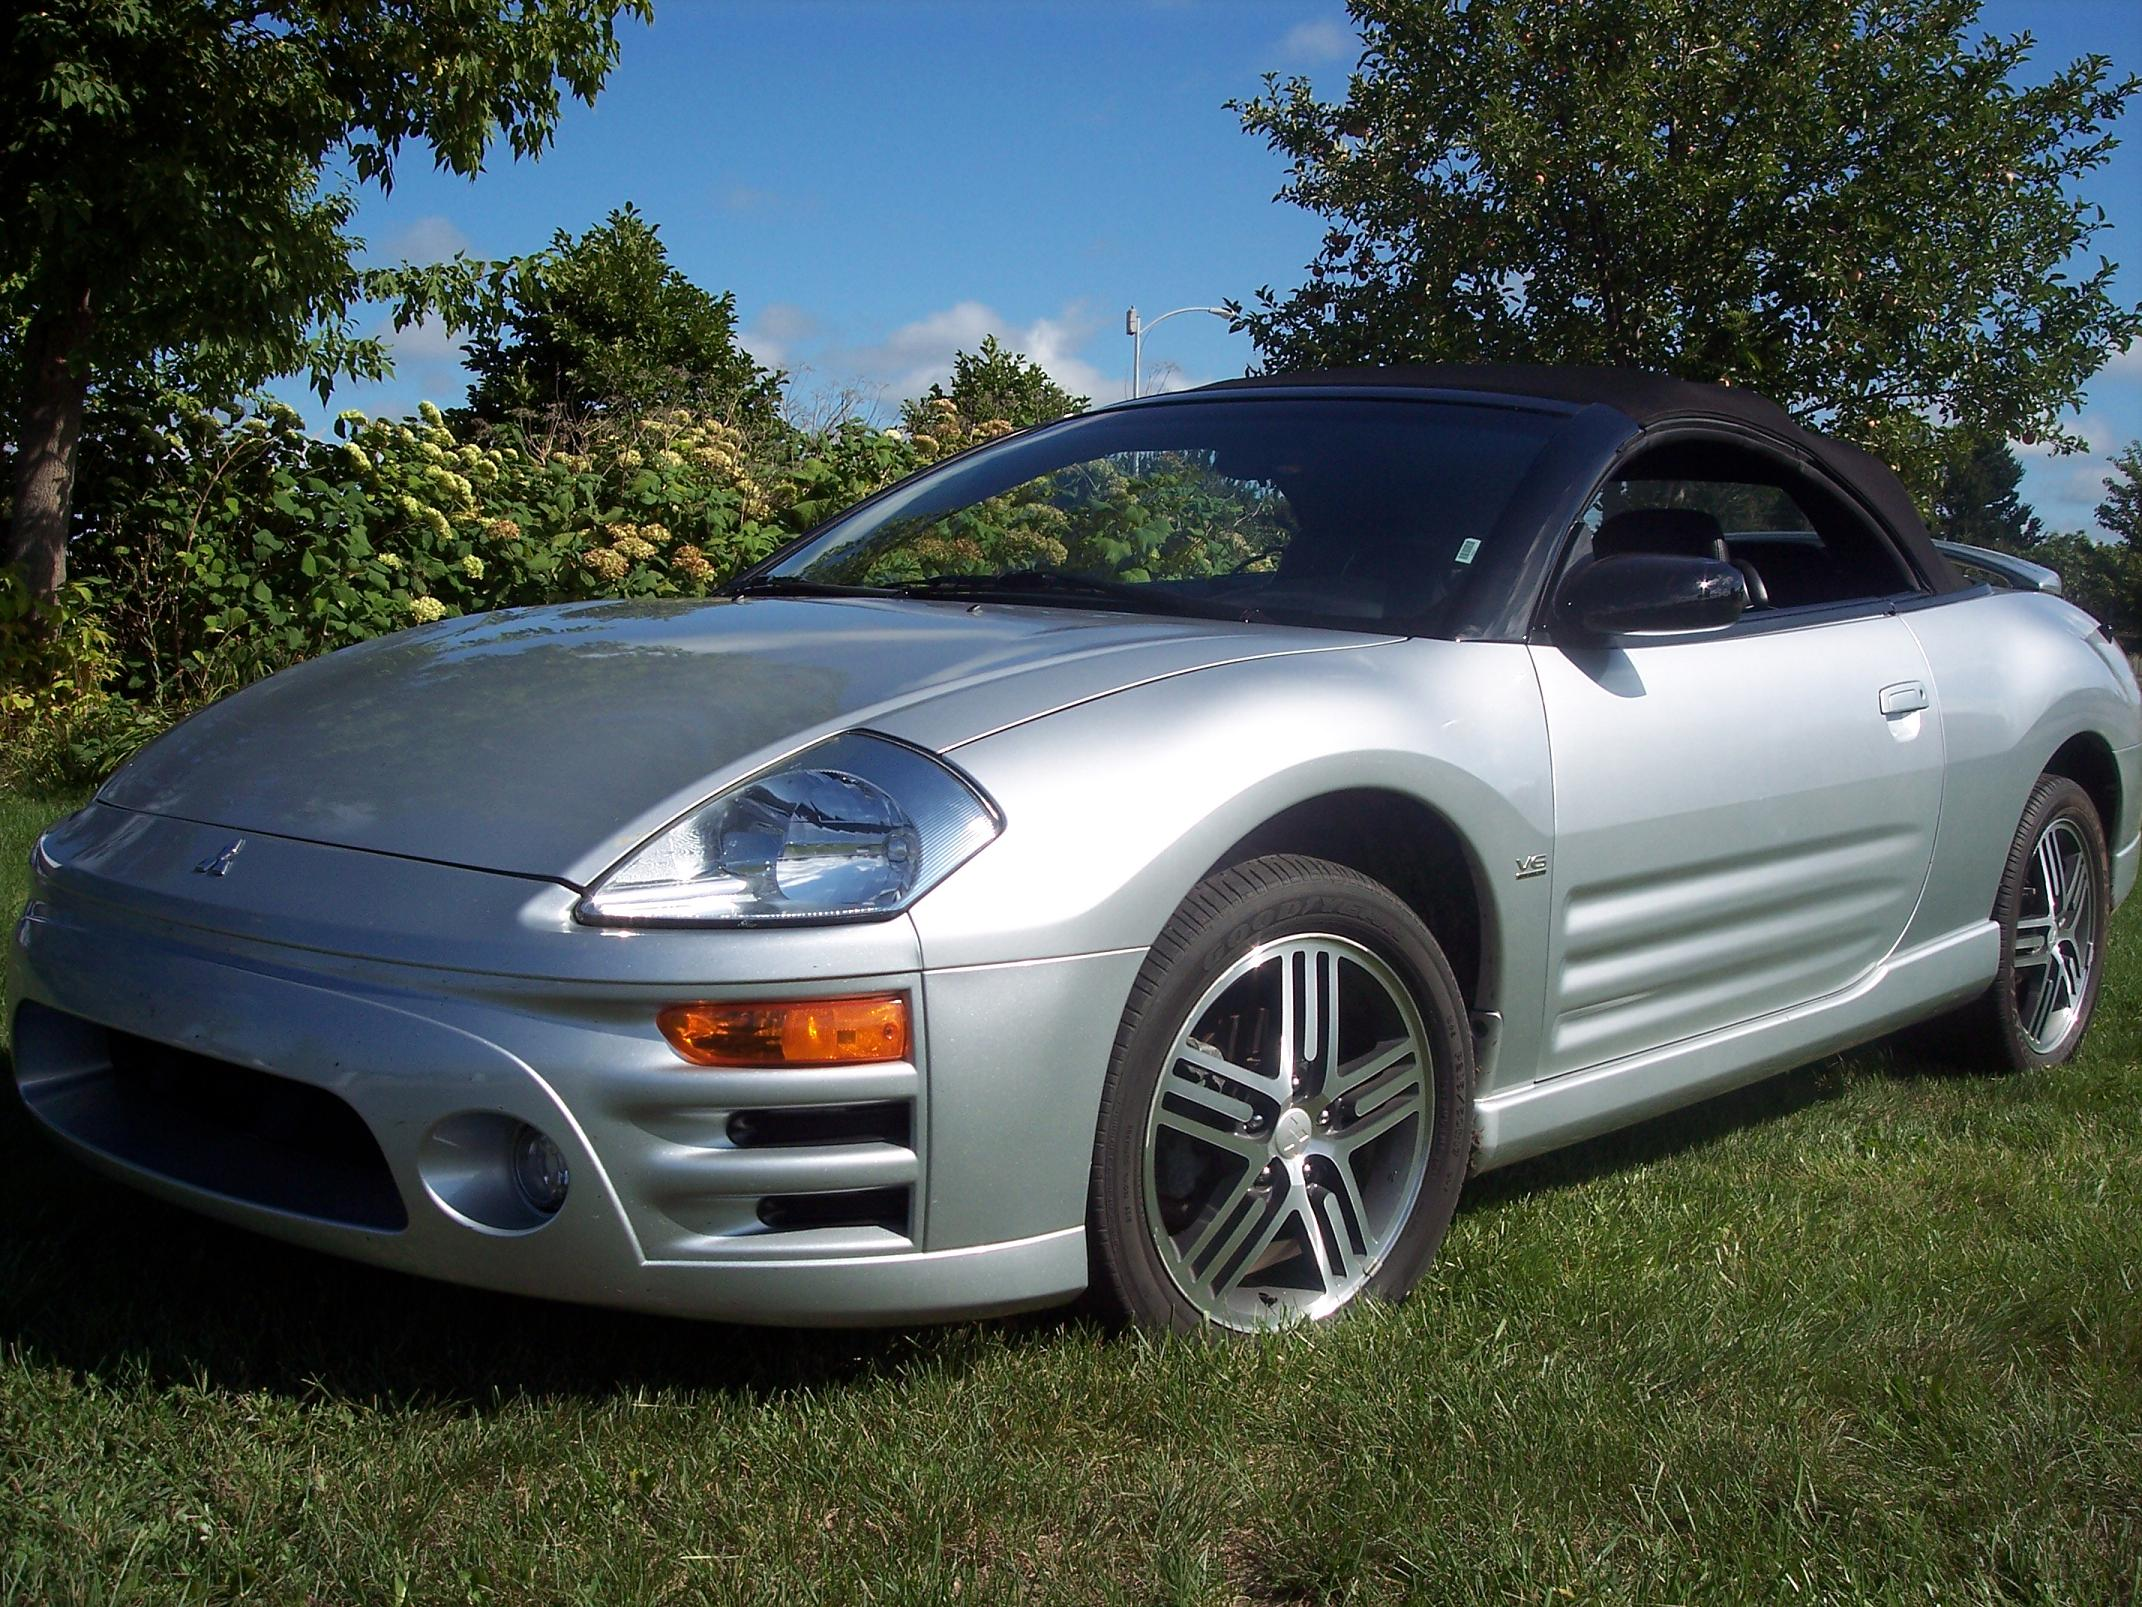 2003 mitsubishi eclipse spyder information and photos zombiedrive. Black Bedroom Furniture Sets. Home Design Ideas